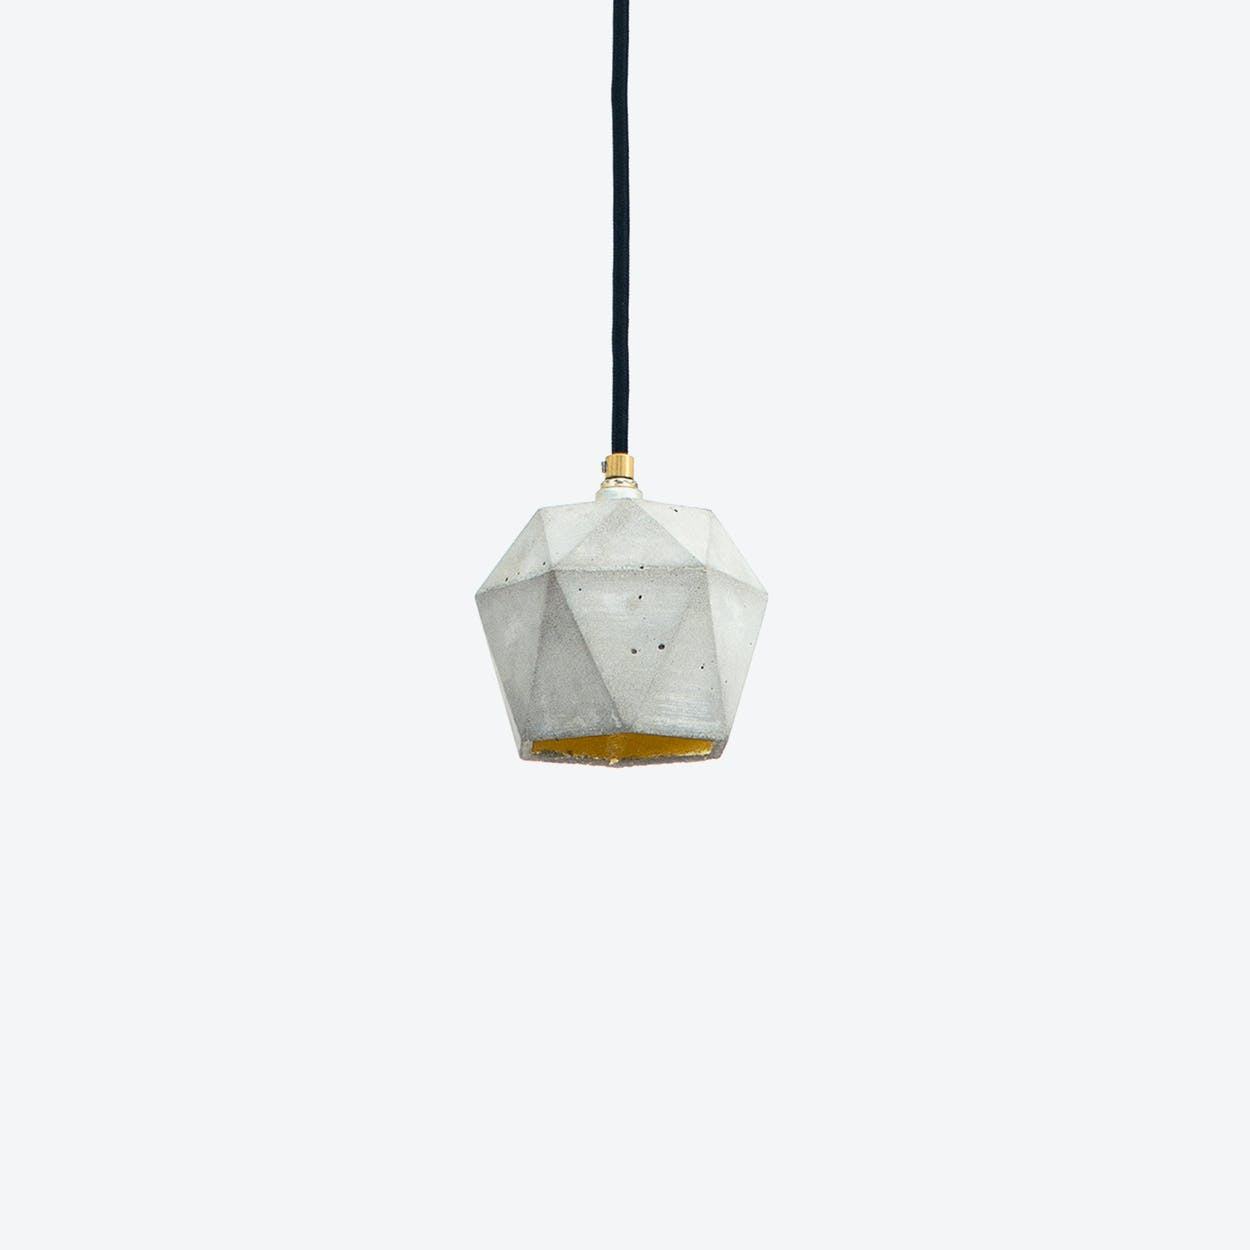 Concrete Pendant Light Triangle Small T2 in Light Grey and Gold